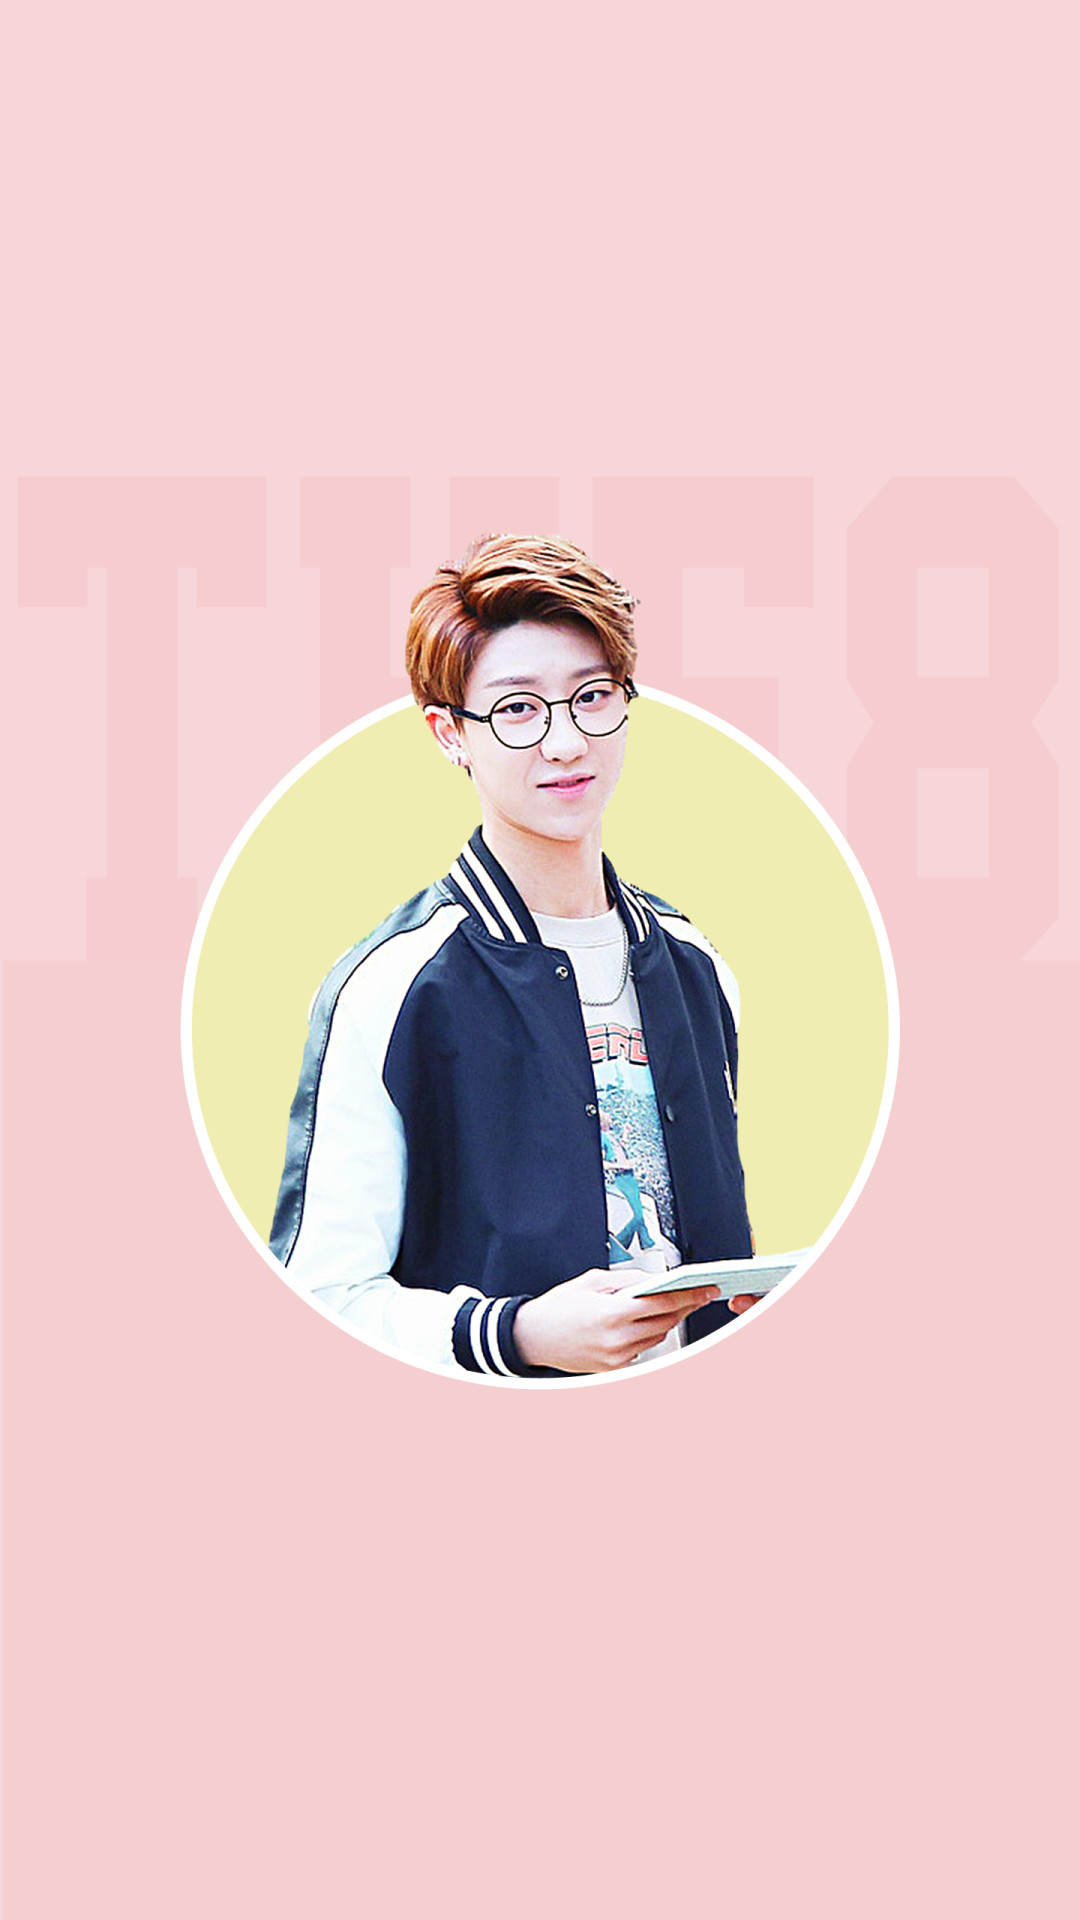 1080x1920 the8 minghao seventeen the8 wallpaper the8 lockscreen minghao wallpaper  minghao lockscreen seventeen wallpaper seventeen lockscreen kpop